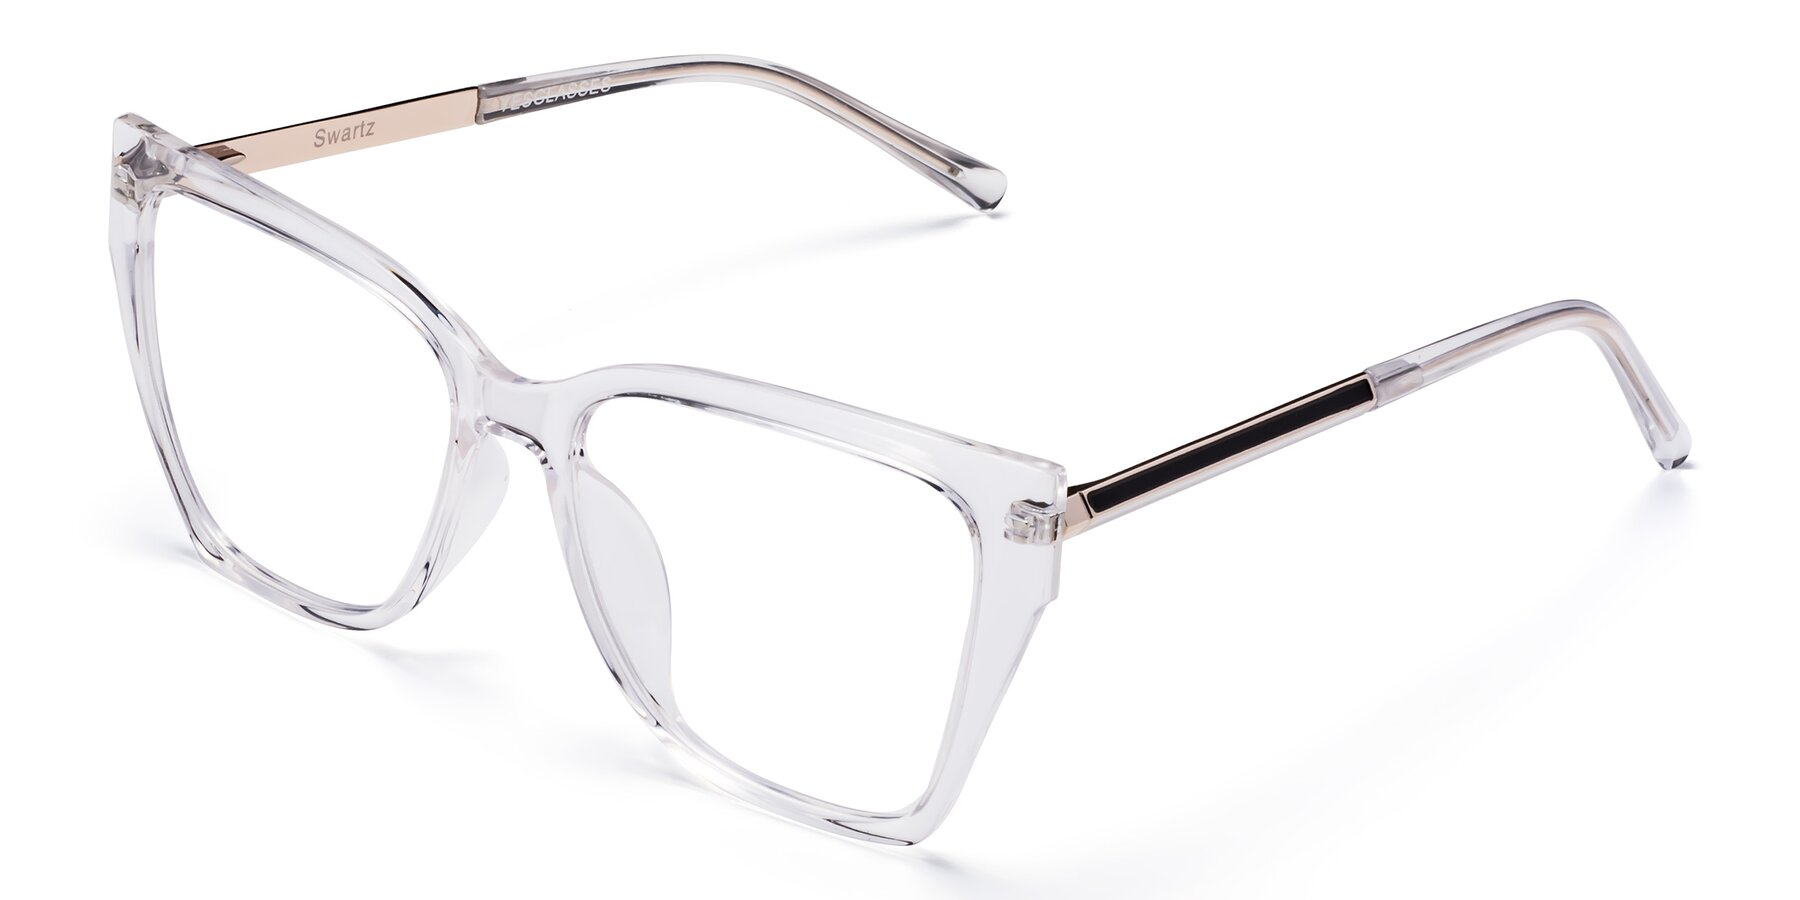 Angle of Swartz in Clear with Clear Blue Light Blocking Lenses